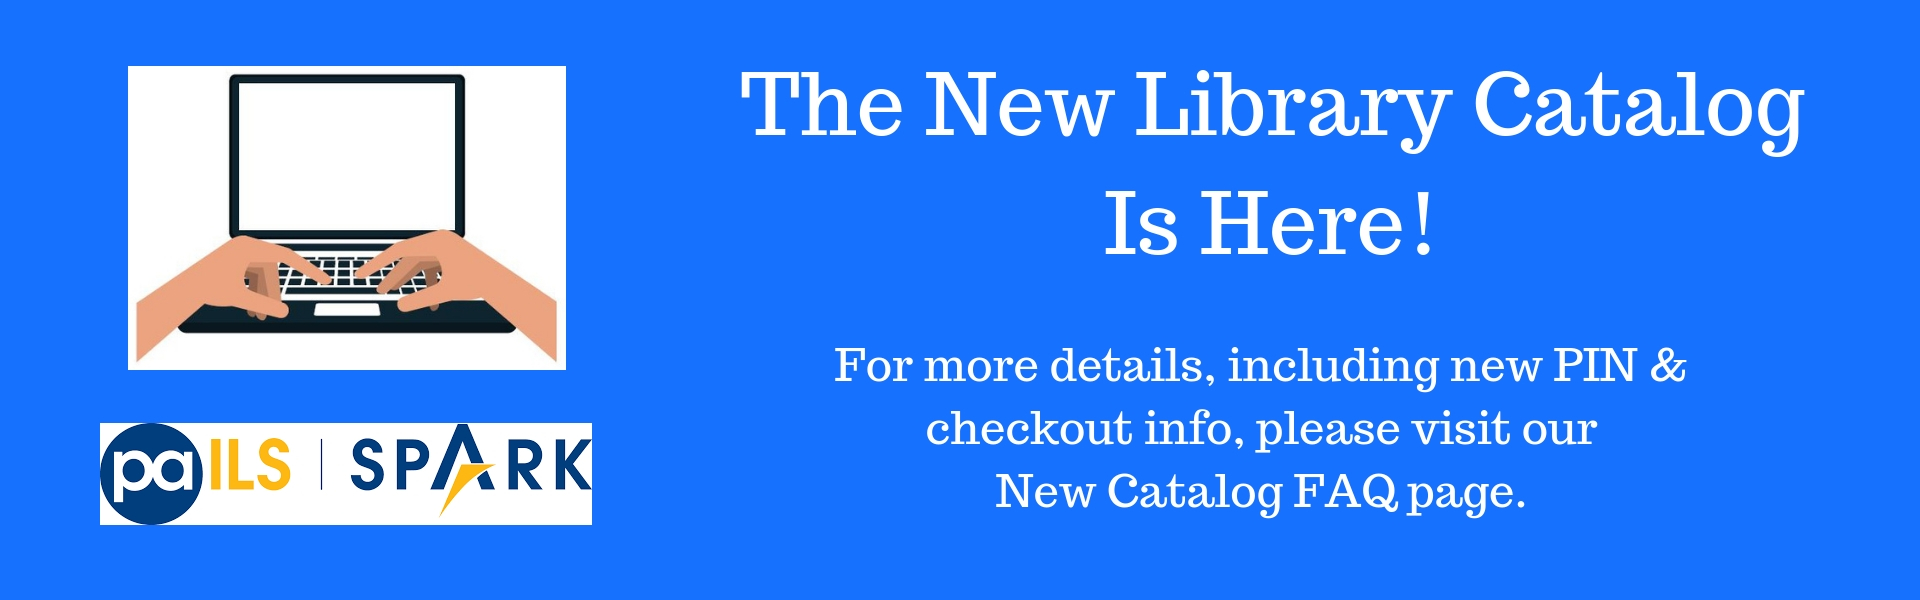 New-Library-Catalog-is-Here